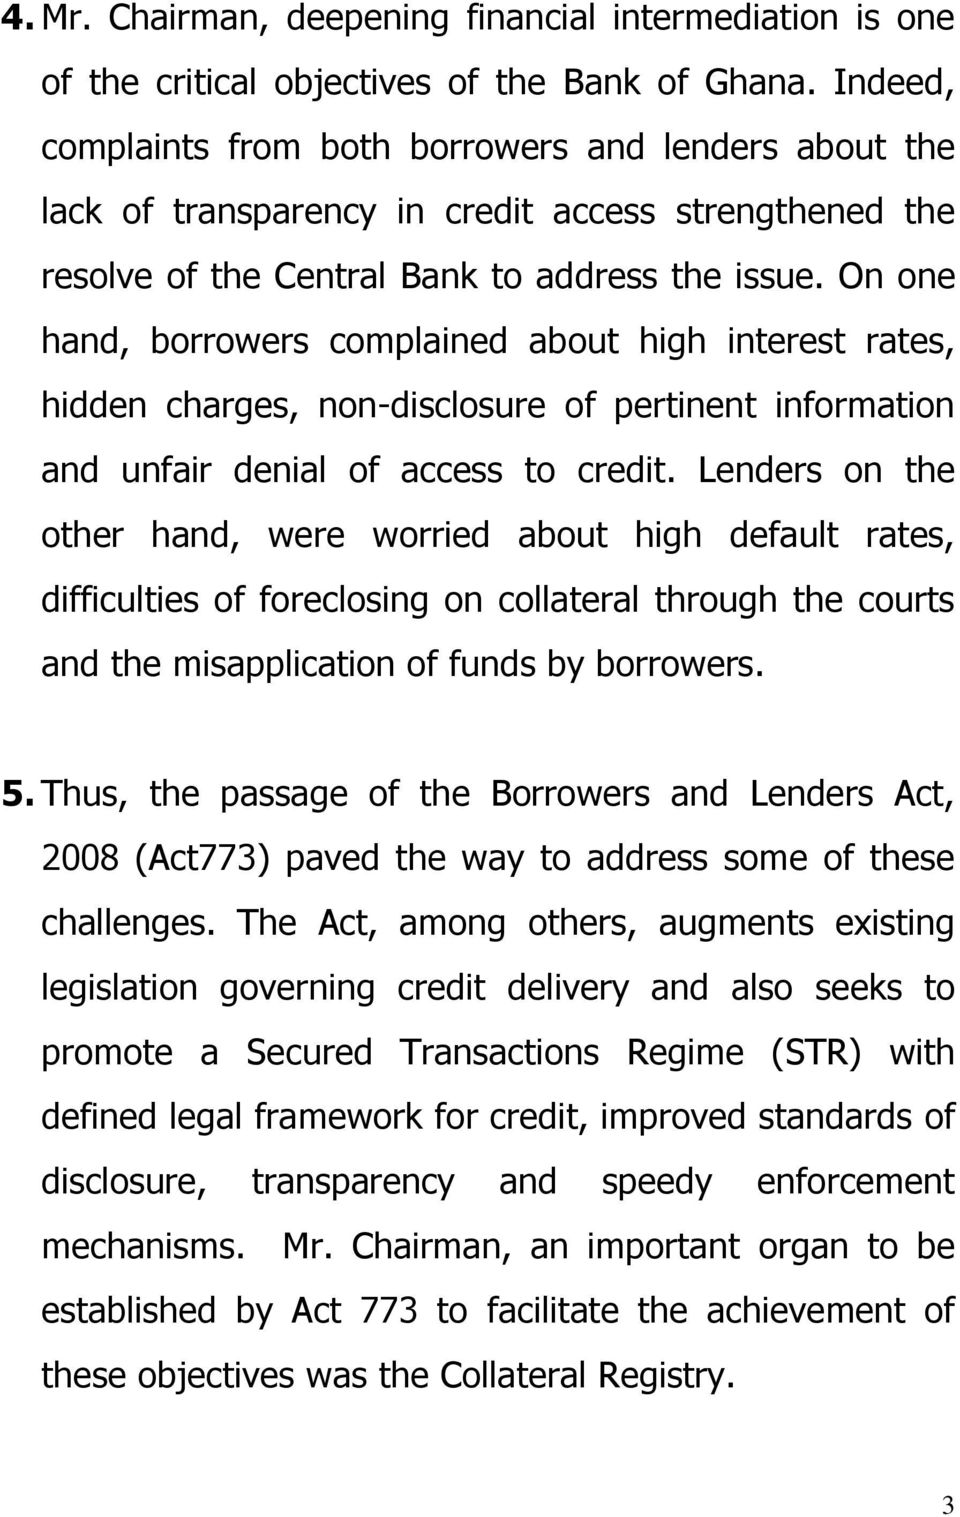 On one hand, borrowers complained about high interest rates, hidden charges, non-disclosure of pertinent information and unfair denial of access to credit.